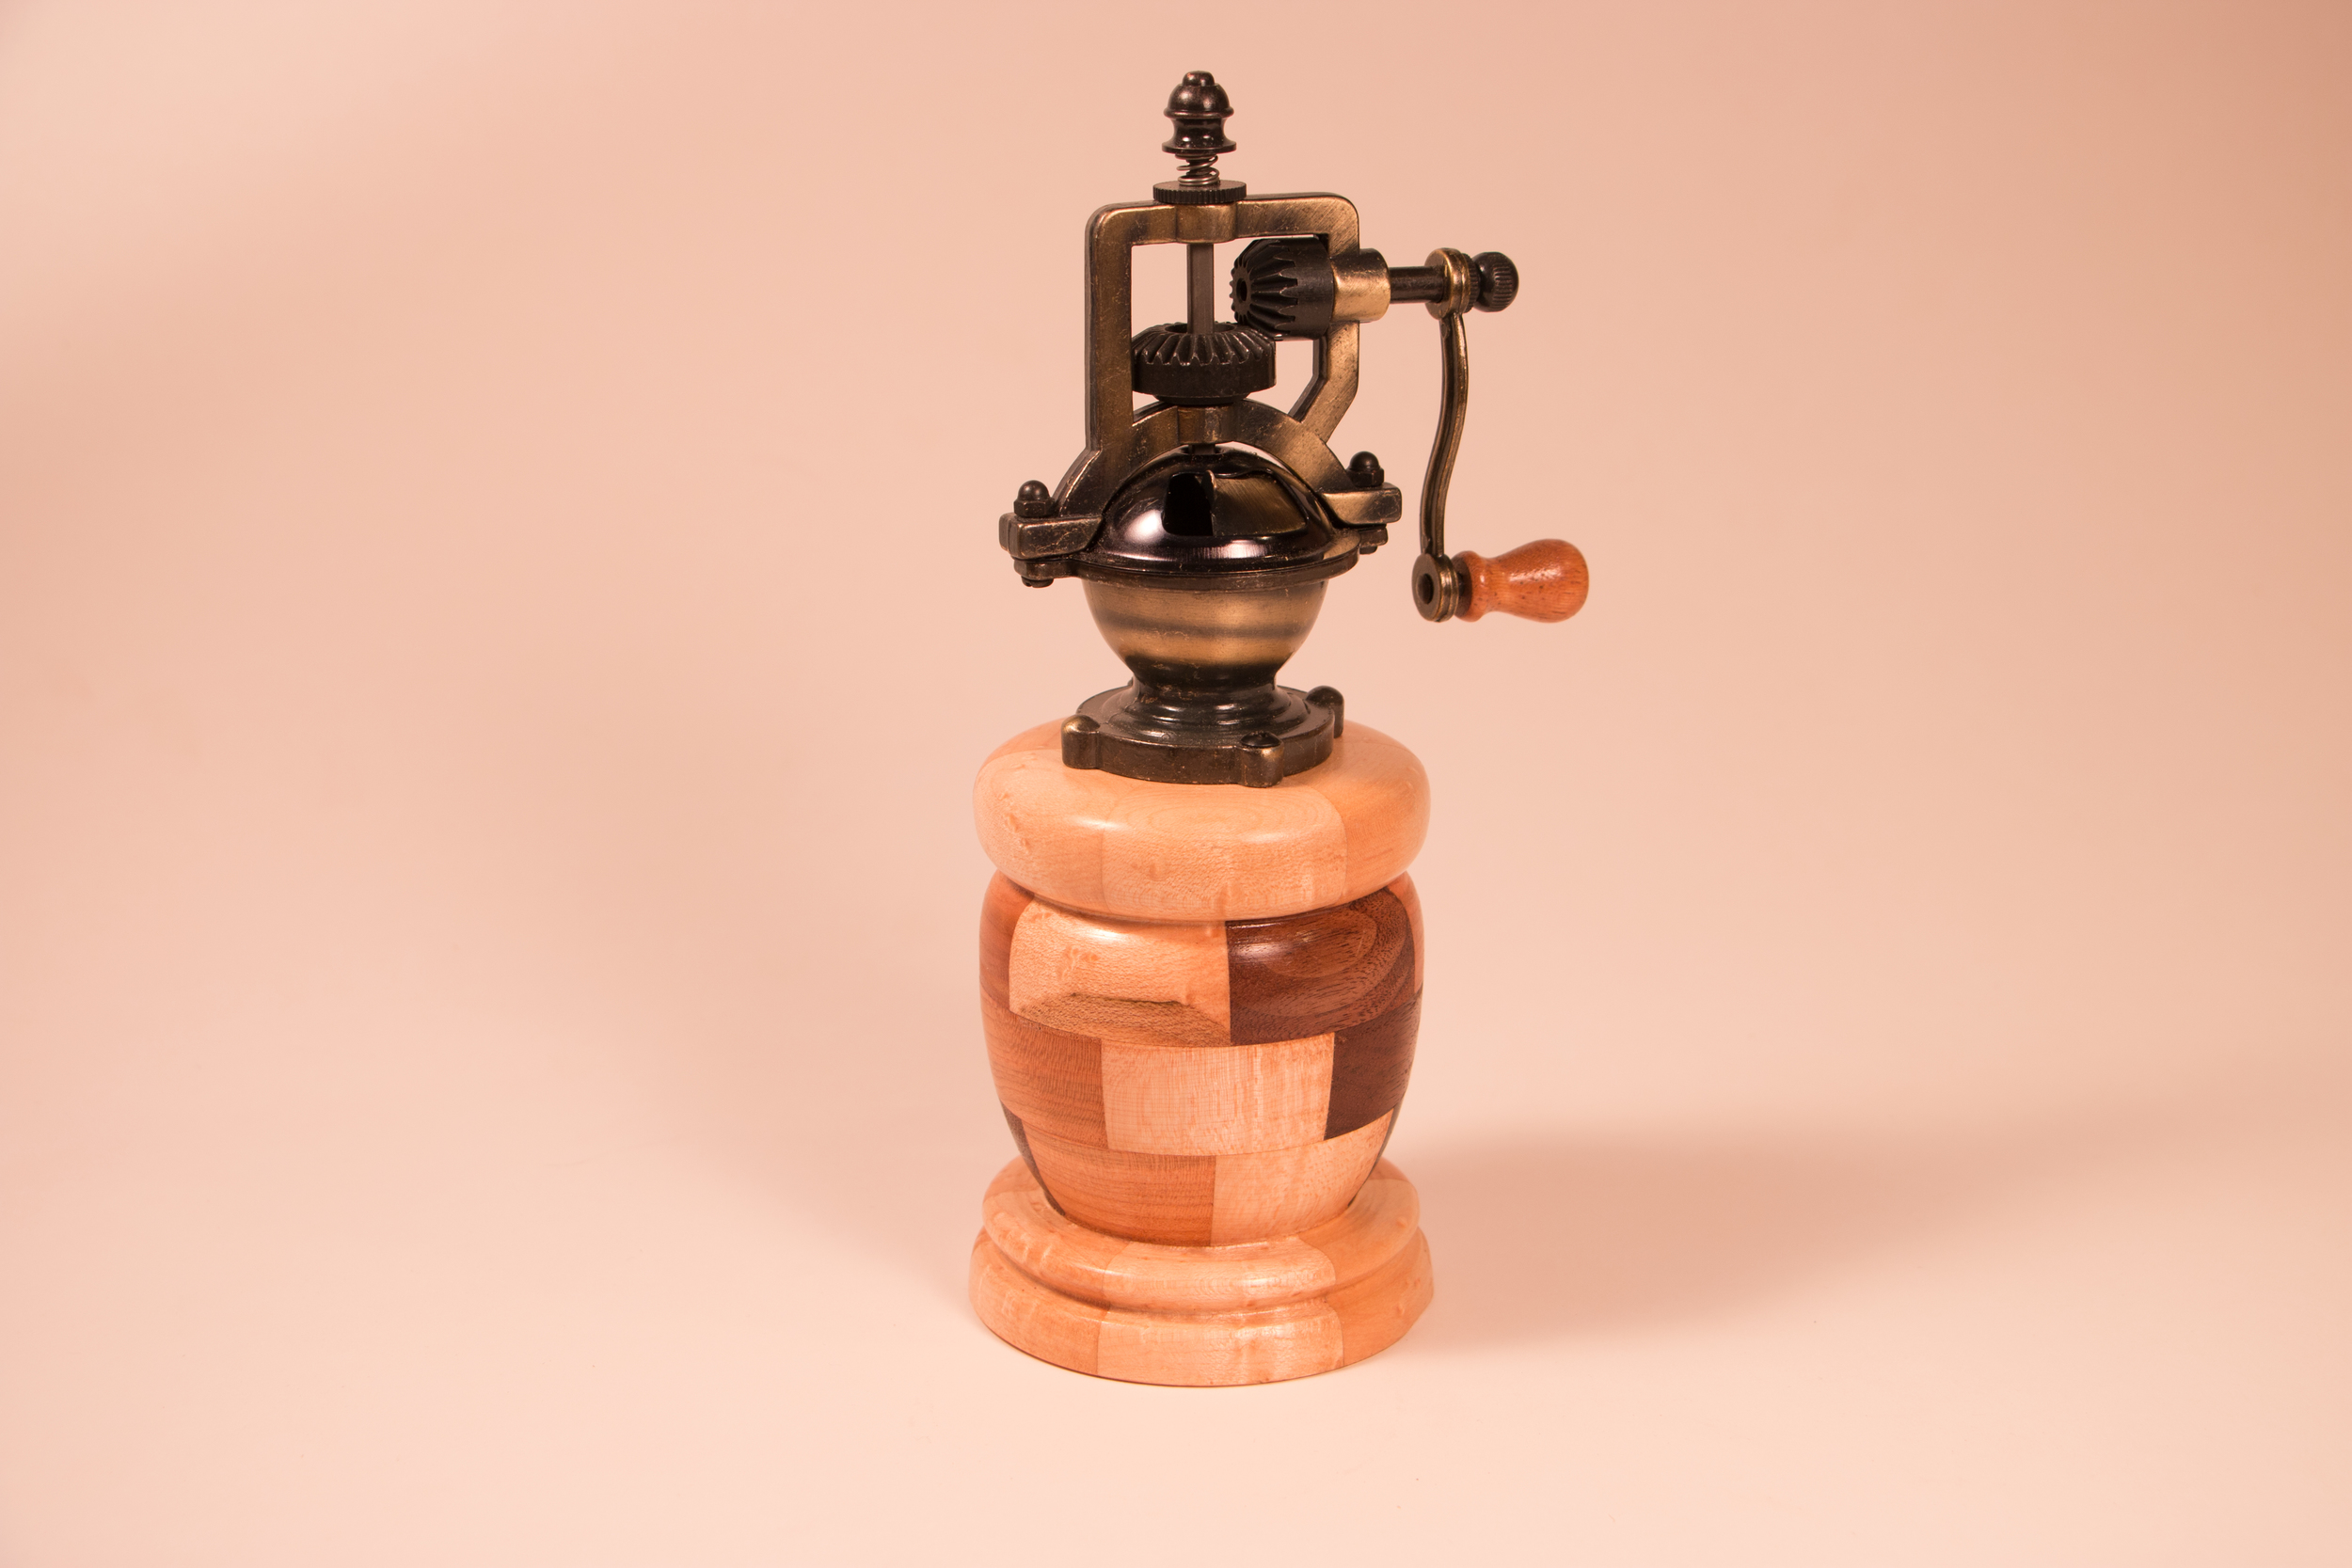 Segmented Pepper Grinder